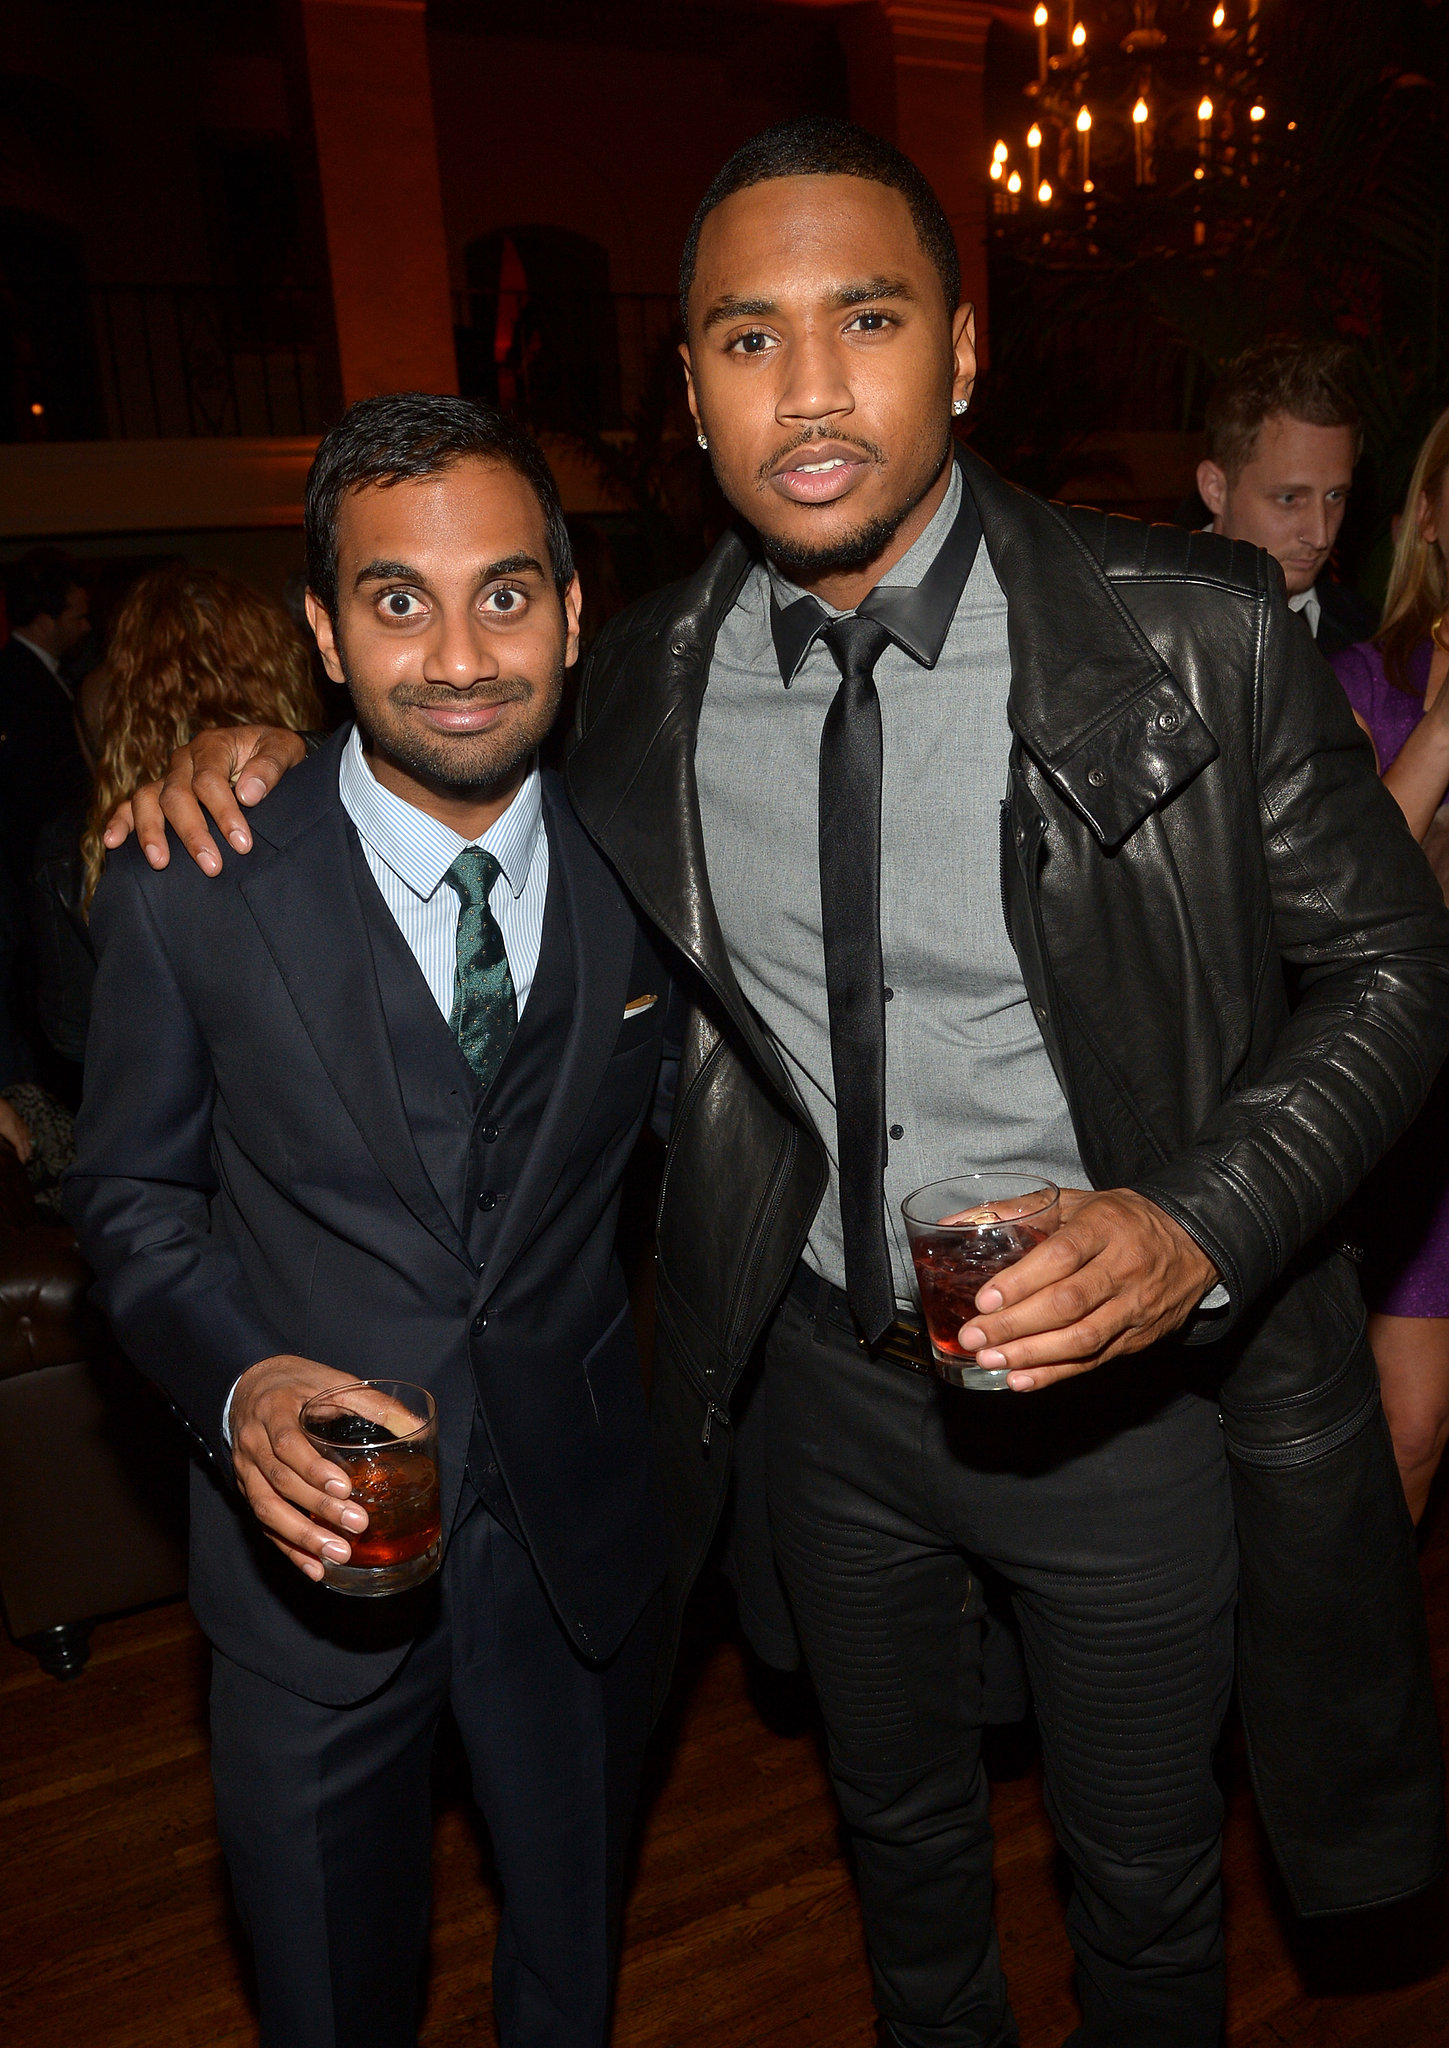 Aziz Ansari and Trey Songz sipped cocktails inside.